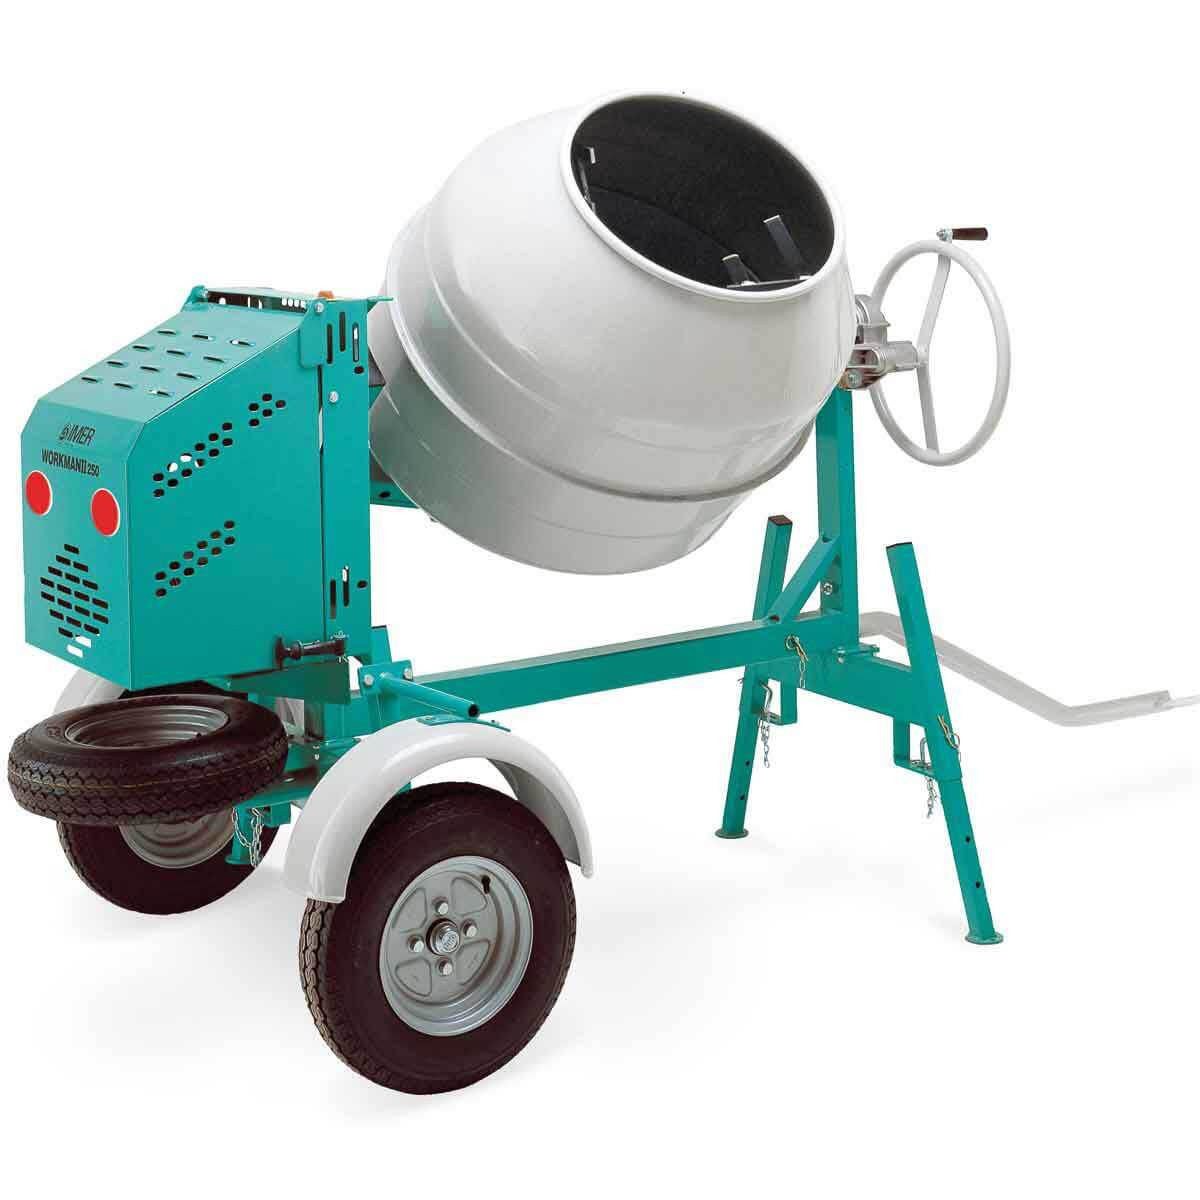 Cement Mixer Blades : Imer workman ii series concrete mixer contractors direct